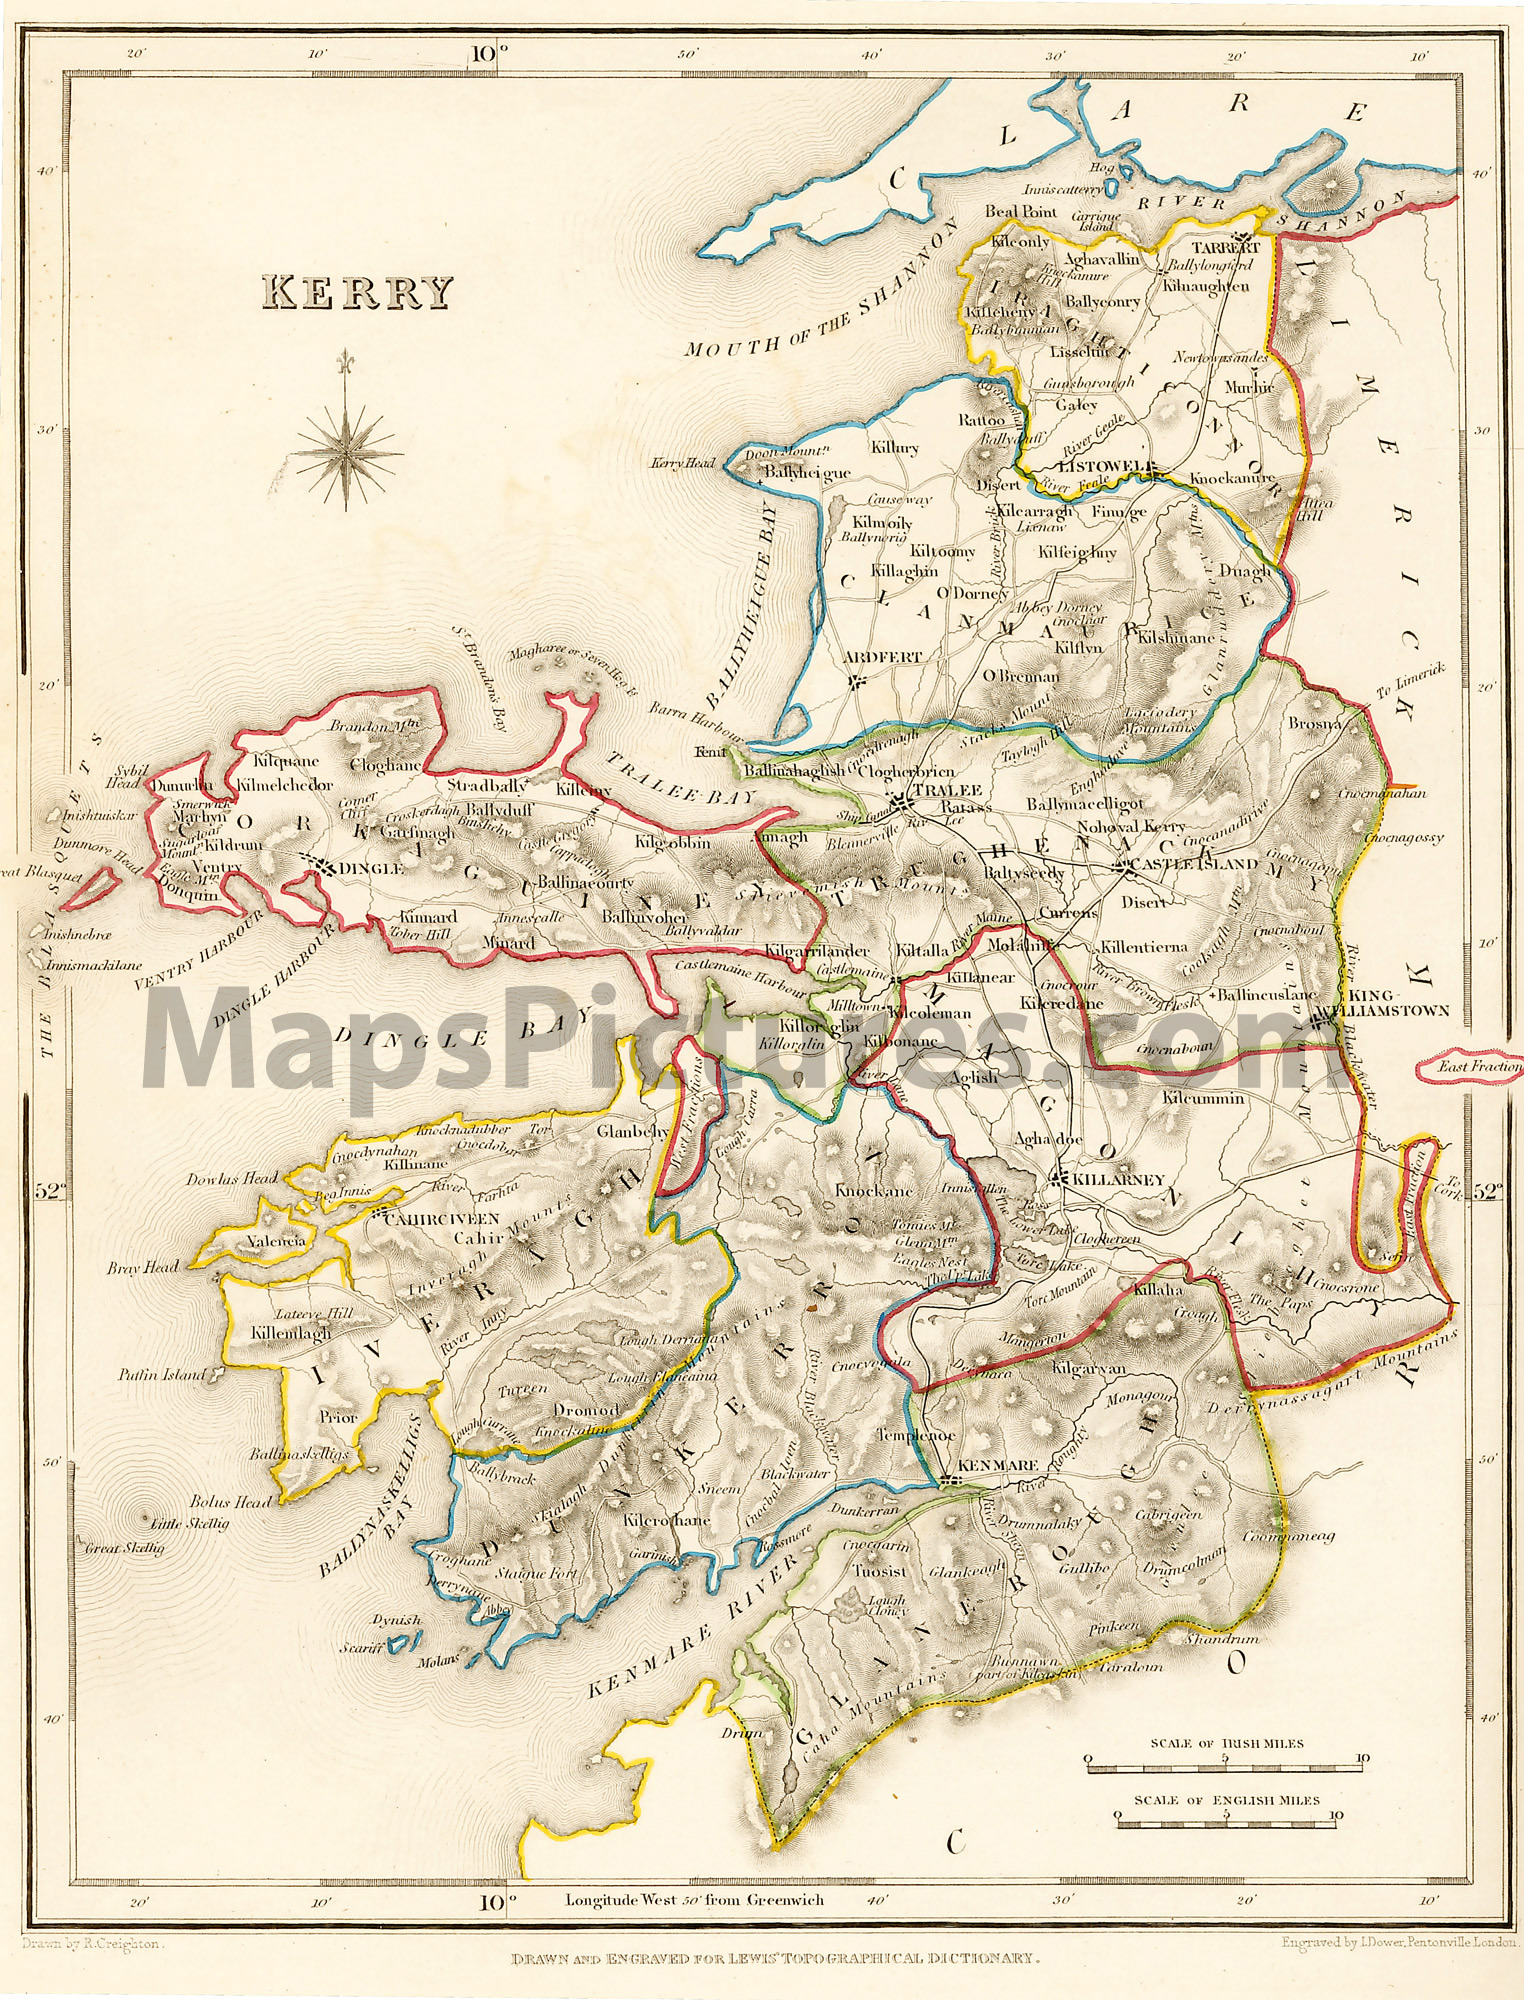 Historic Maps All Island Ireland Map Collections At UCD And On - Old maps of dublin